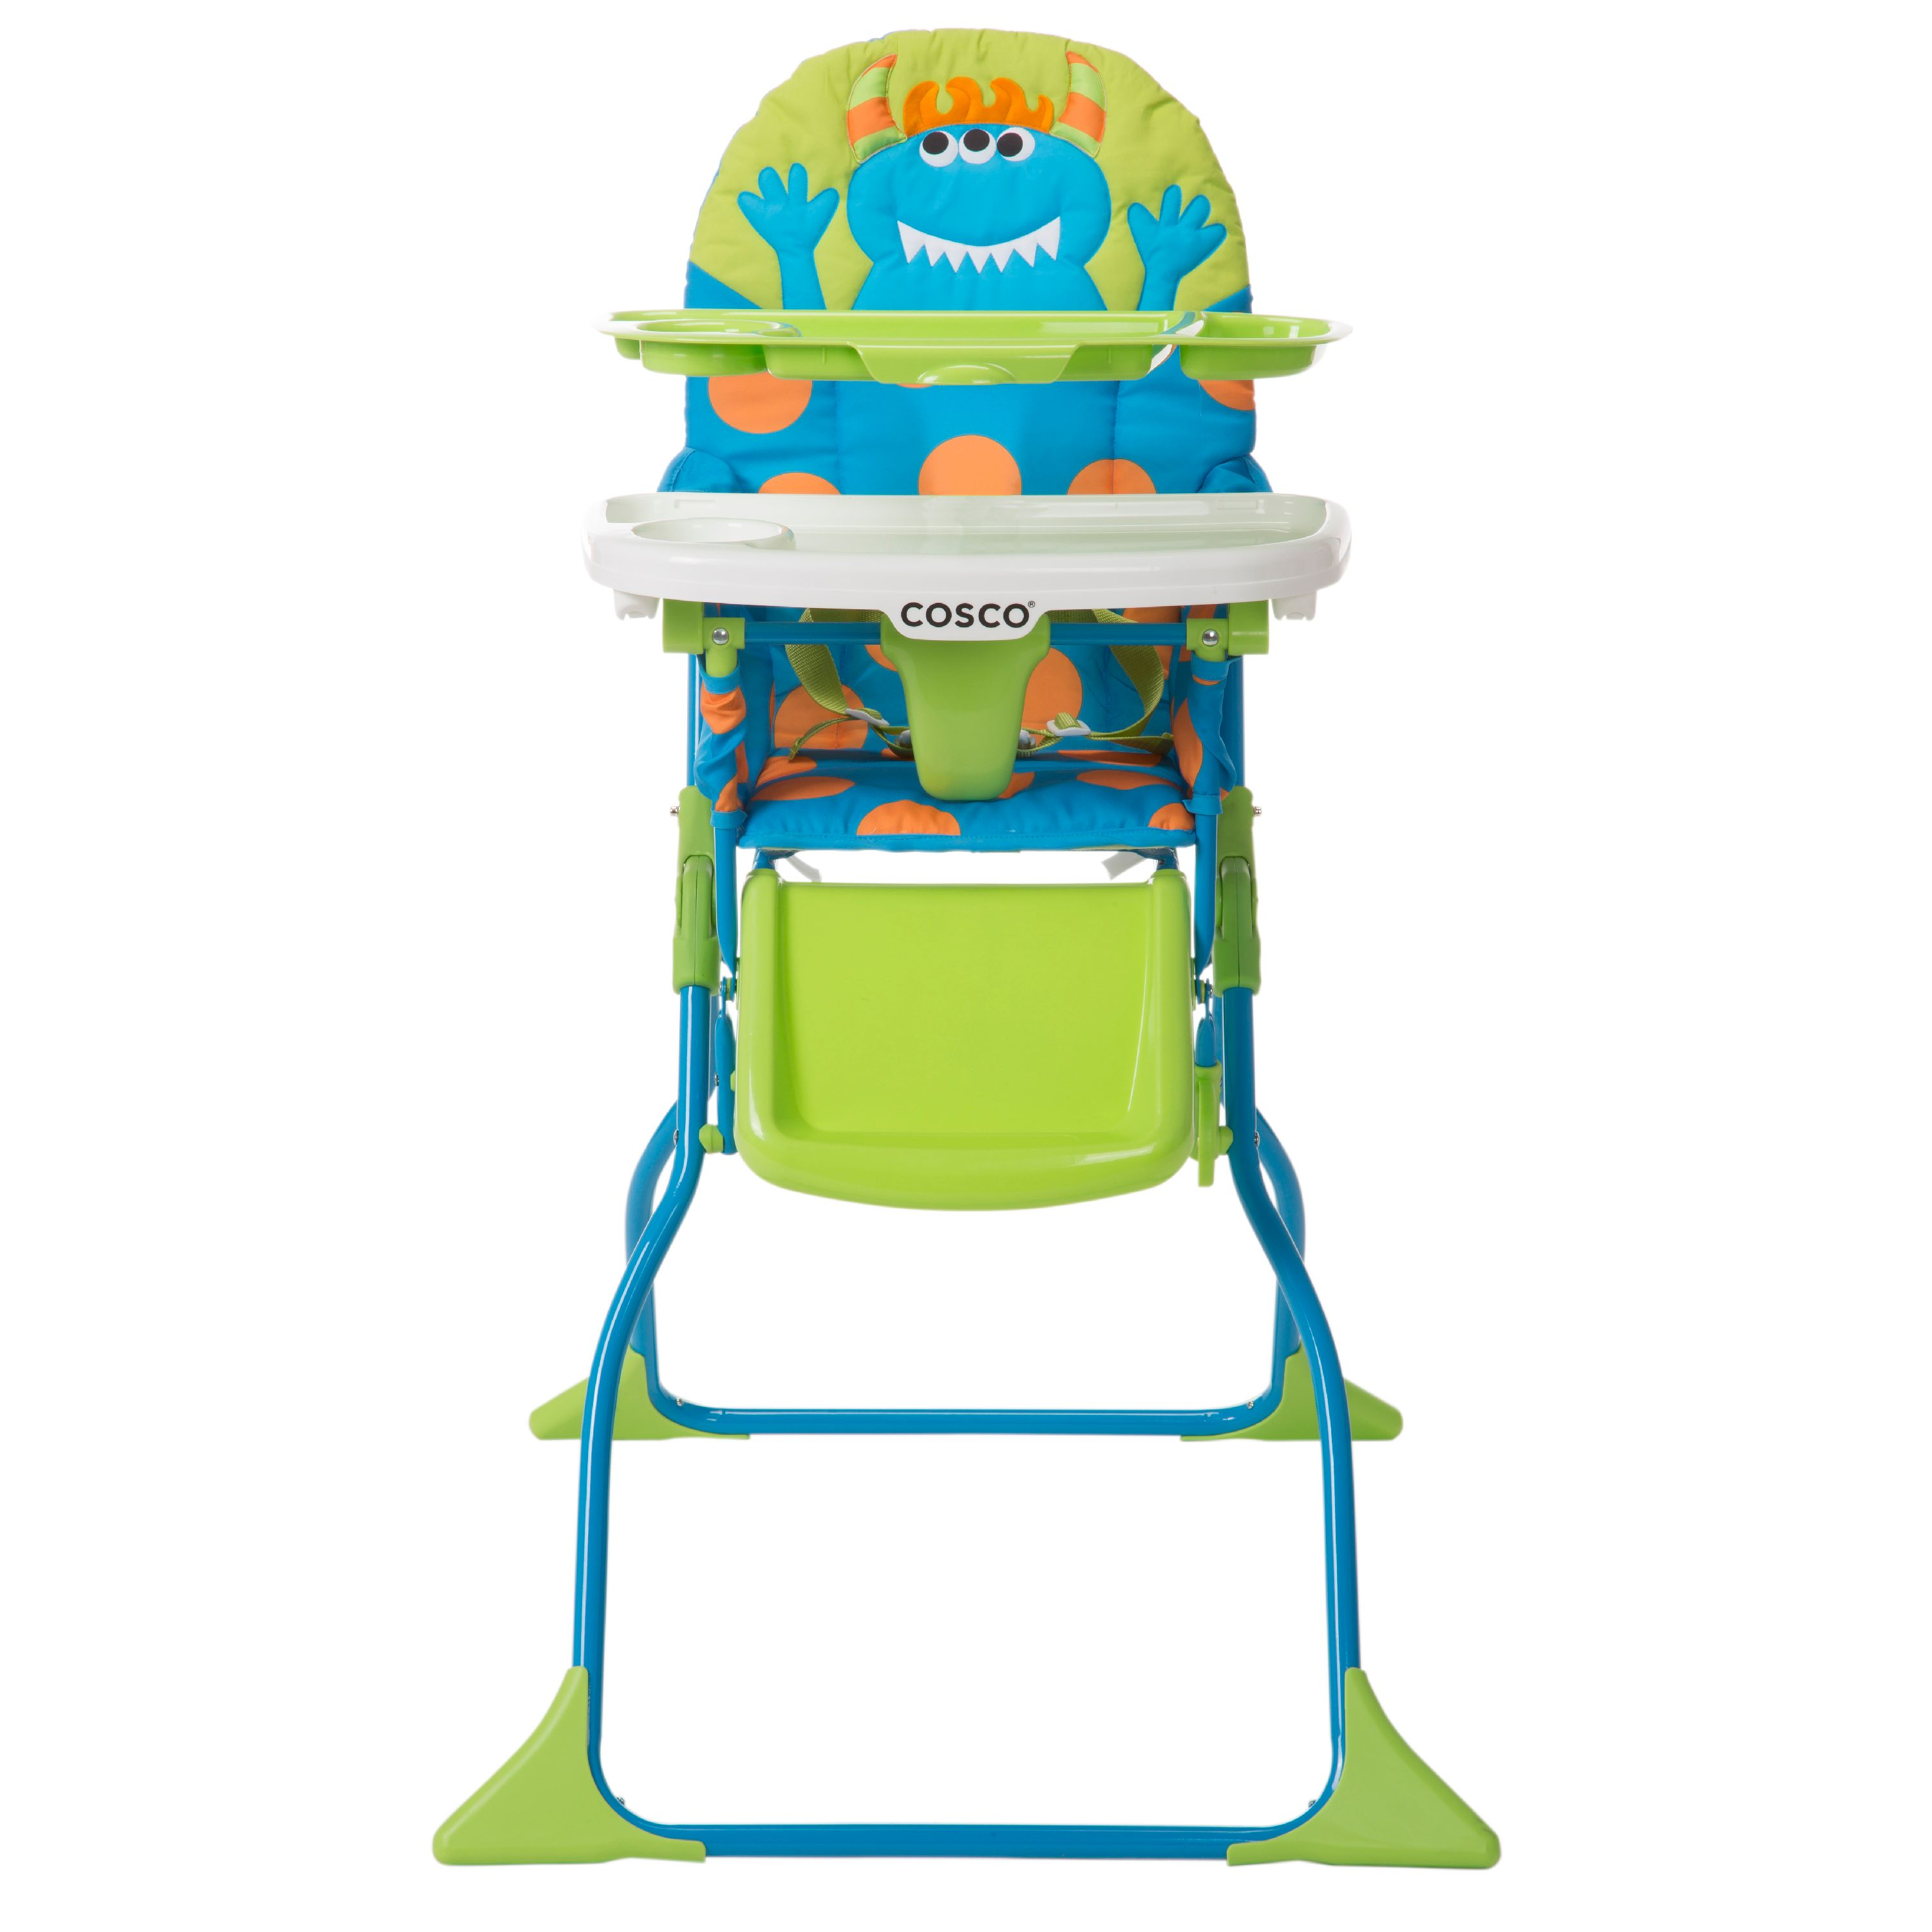 evenflo compact high chair little tikes pink and purple table chairs fisher price easy fold baby online store